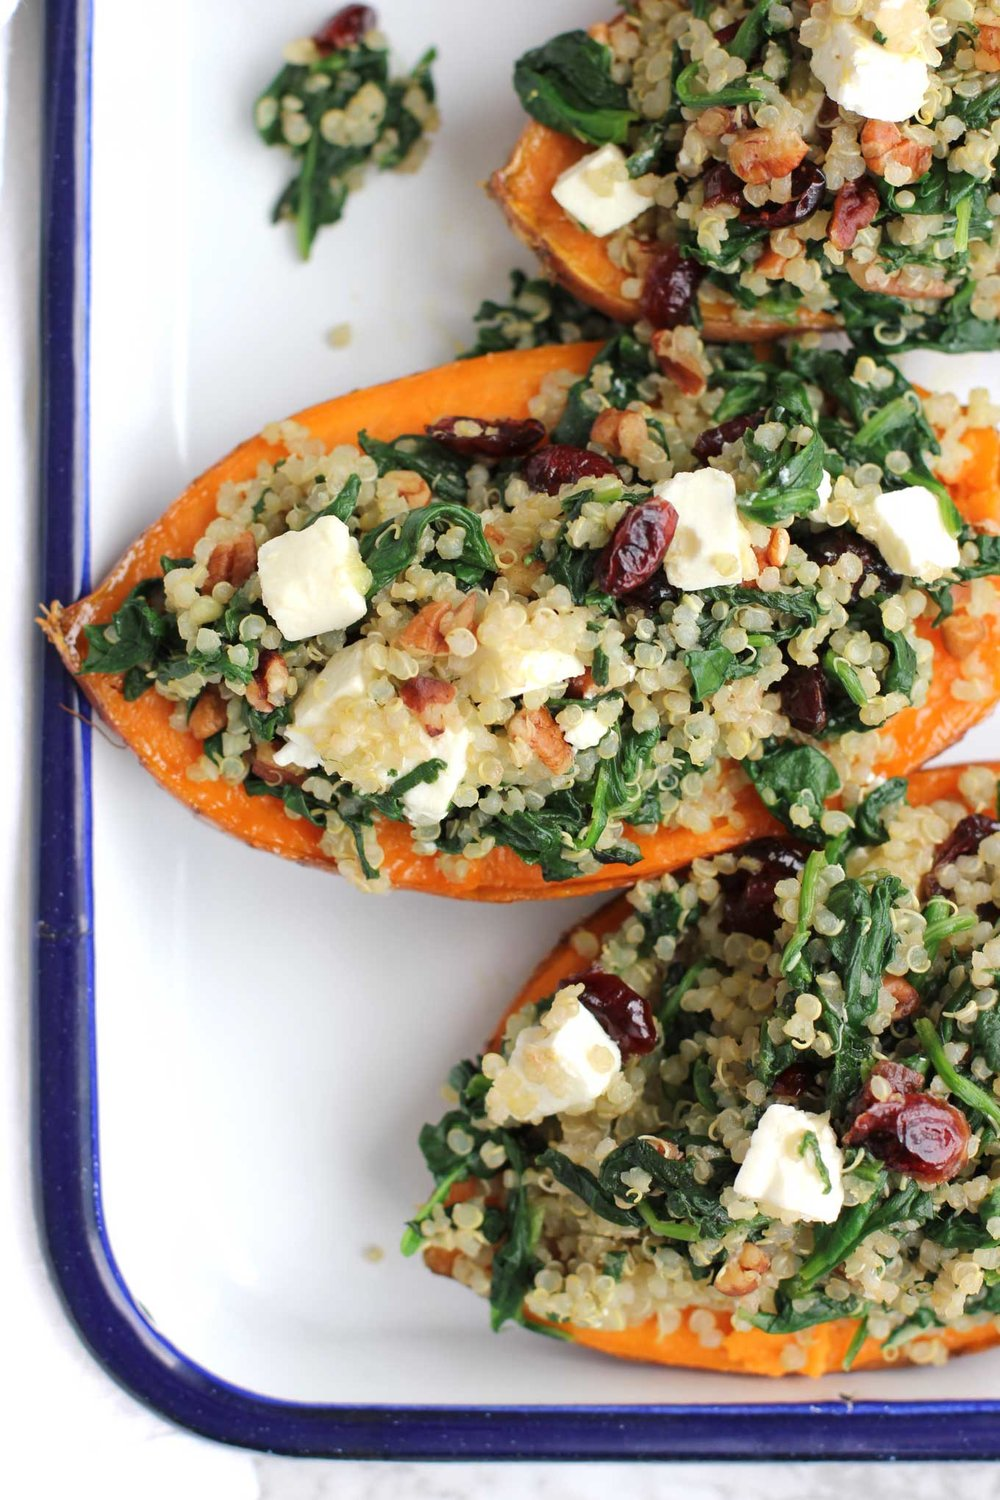 Quinoa-Stuffed Sweet Potato Recipe - This recipe is a meal in and of itself to get your eating back on the right track.